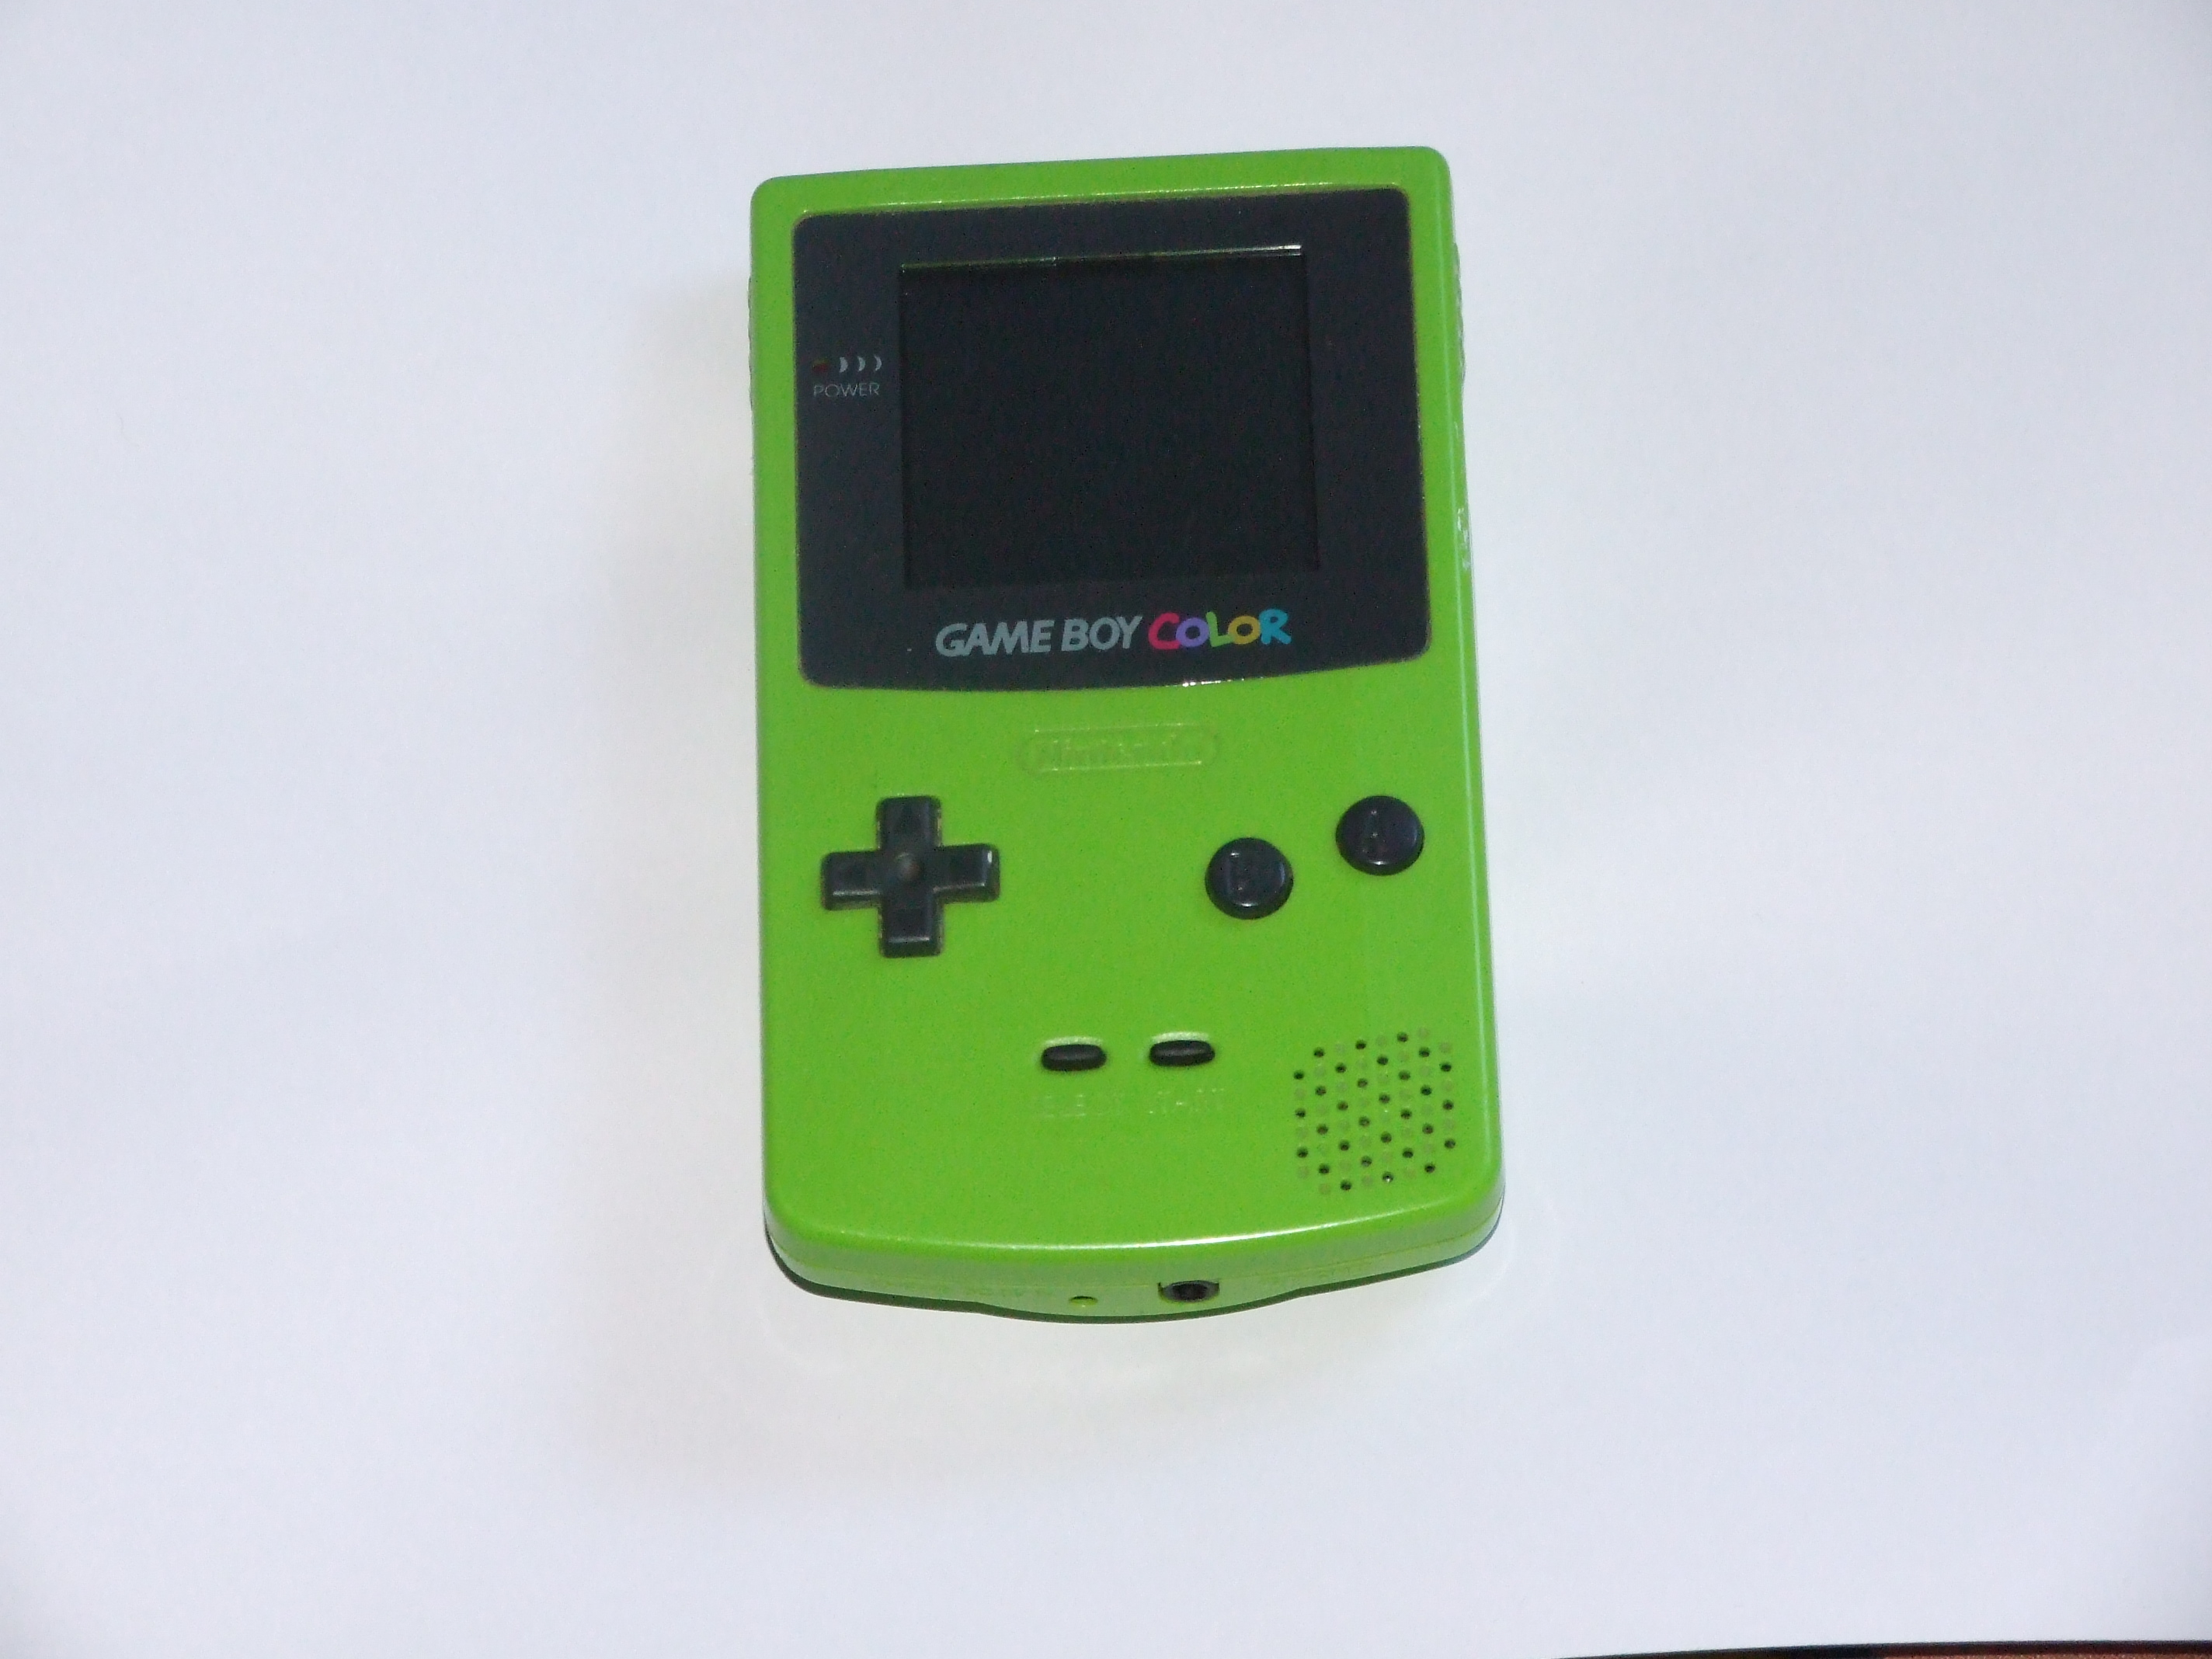 Game Boy Color (Green)